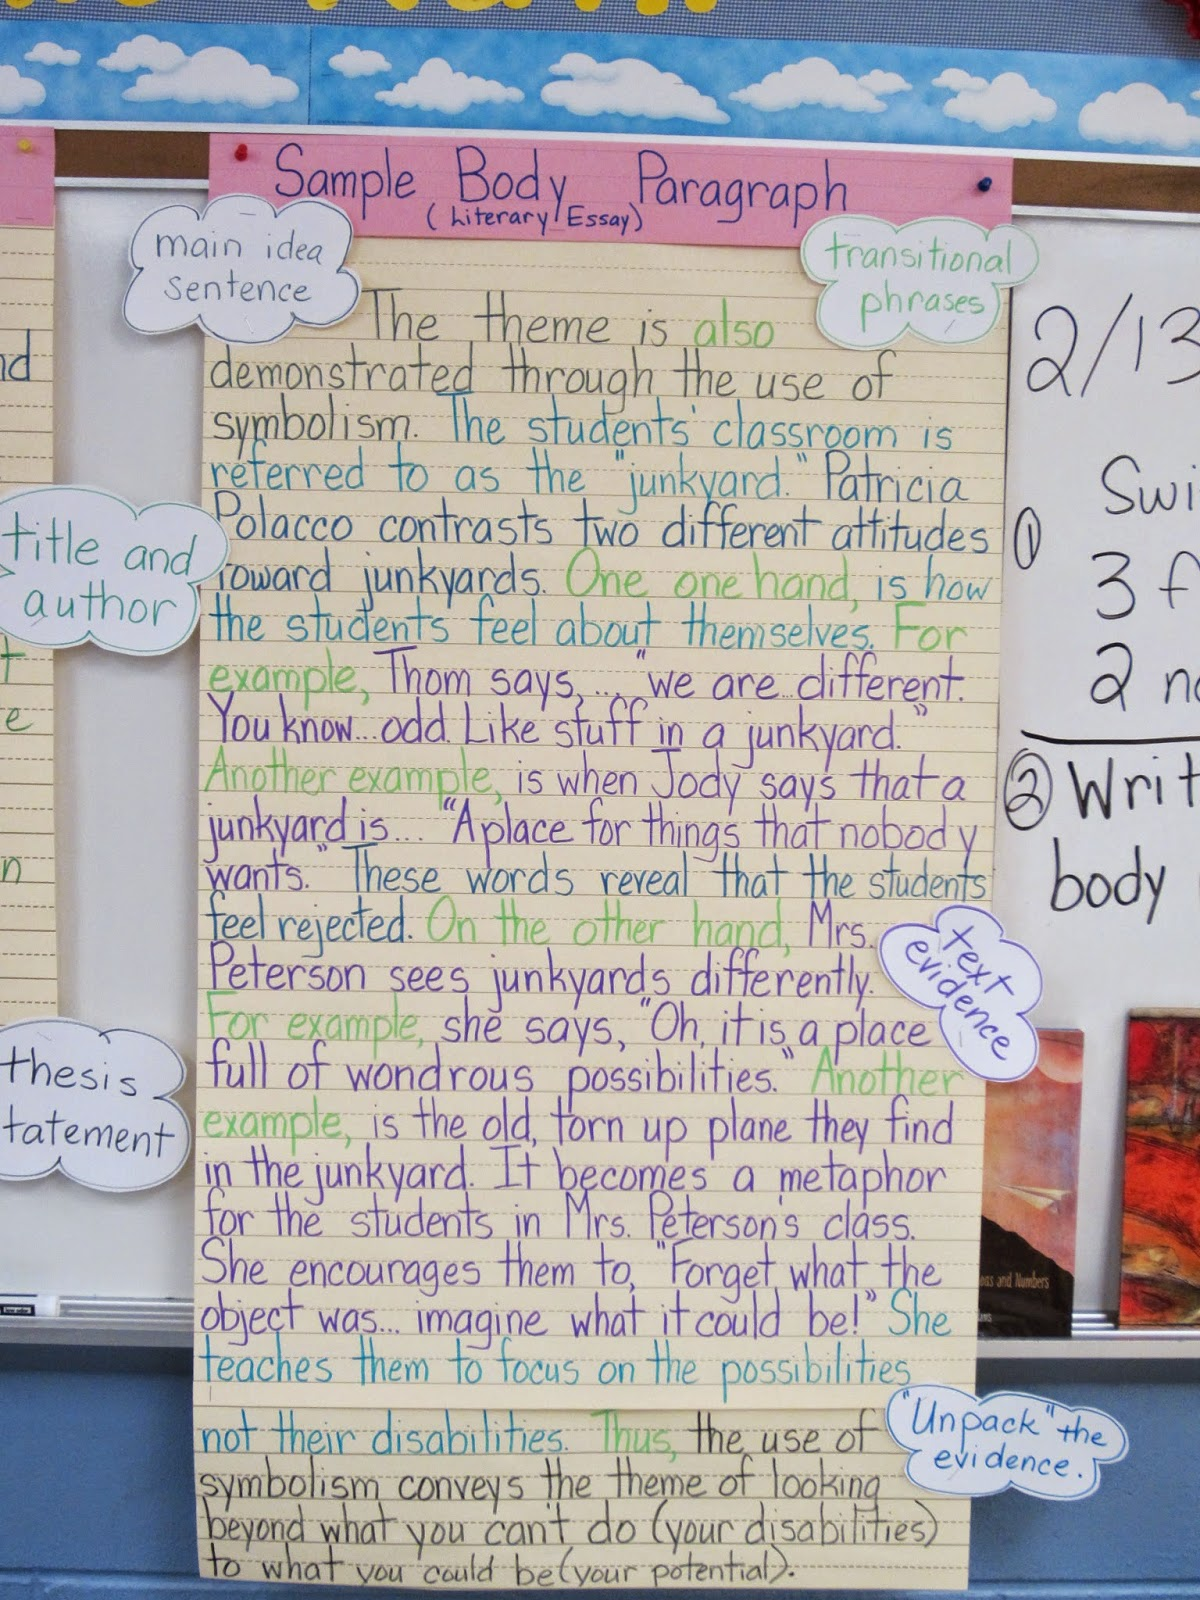 write your own story essay structure boot camp our final step will be to turn our attention to conclusions the process of working together cooperatively composing then working independently to produce